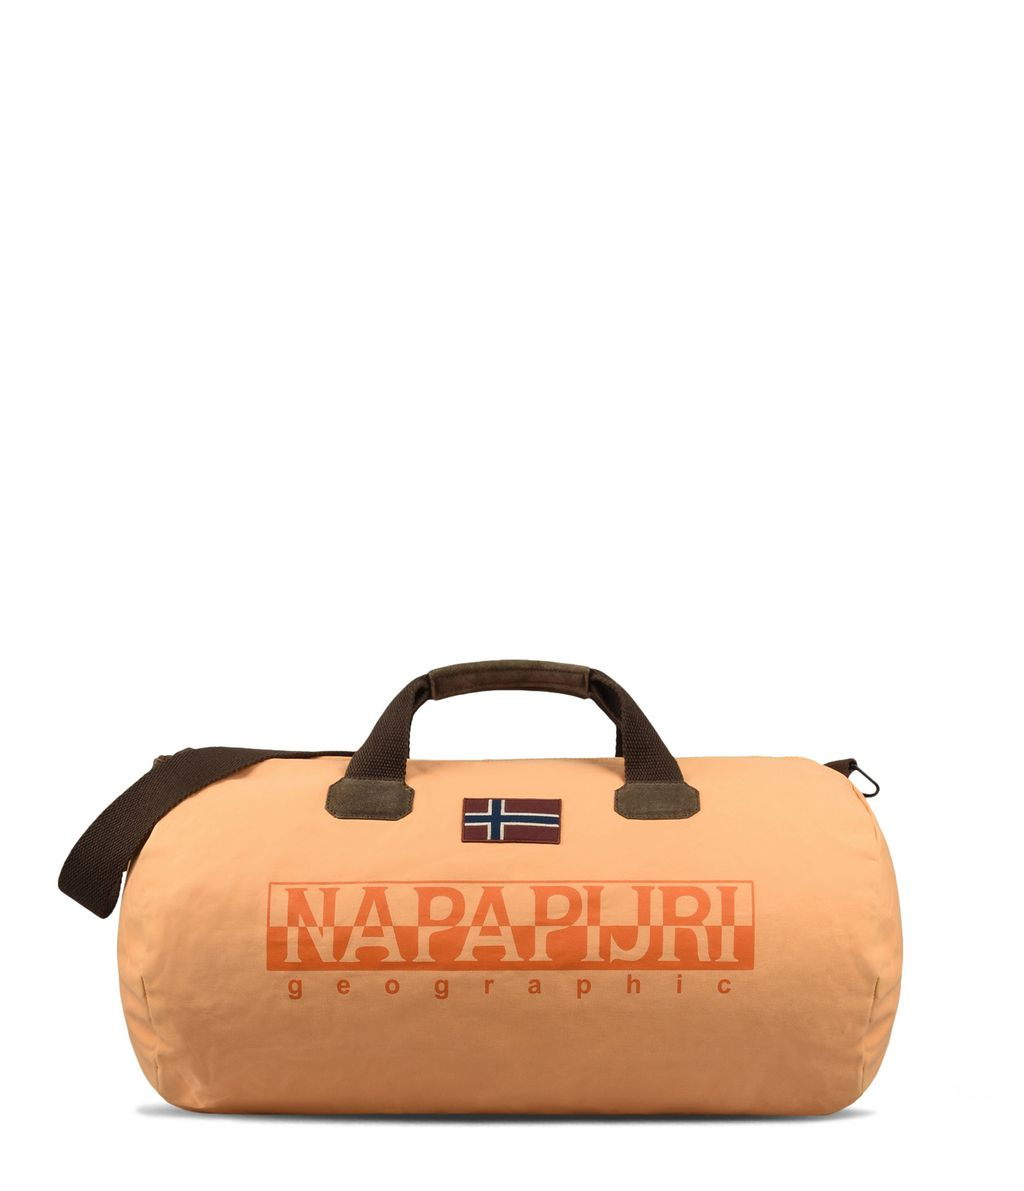 NAPAPIJRI BERING   TRAVEL BAG,PEACH